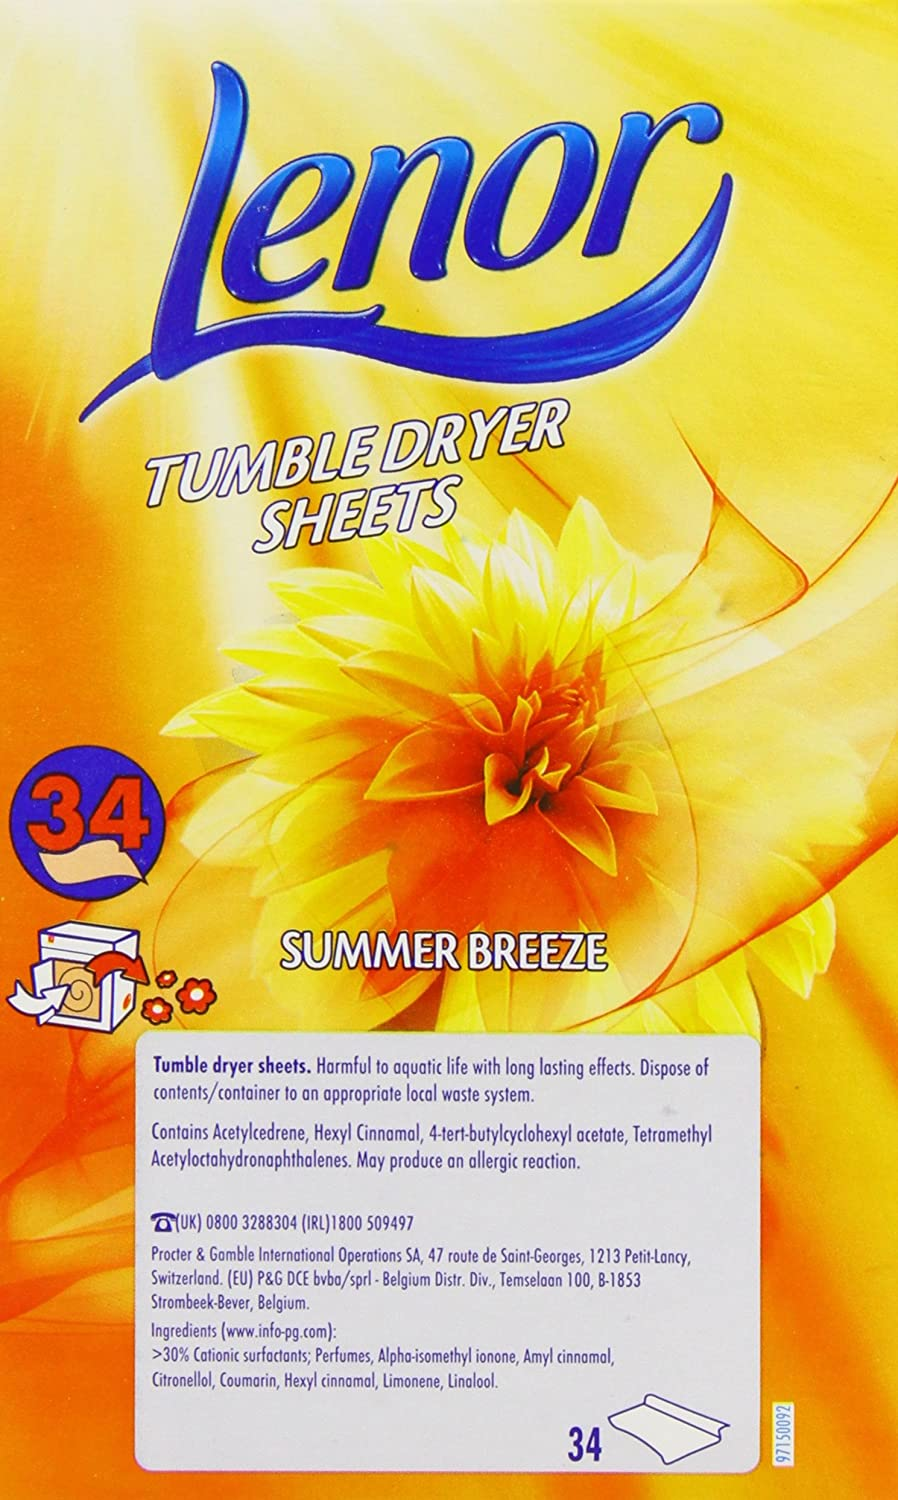 Lenor Tumble Dryer Sheets Summer Breeze 34 Sheets (Pack of 3): Amazon.es: Informática